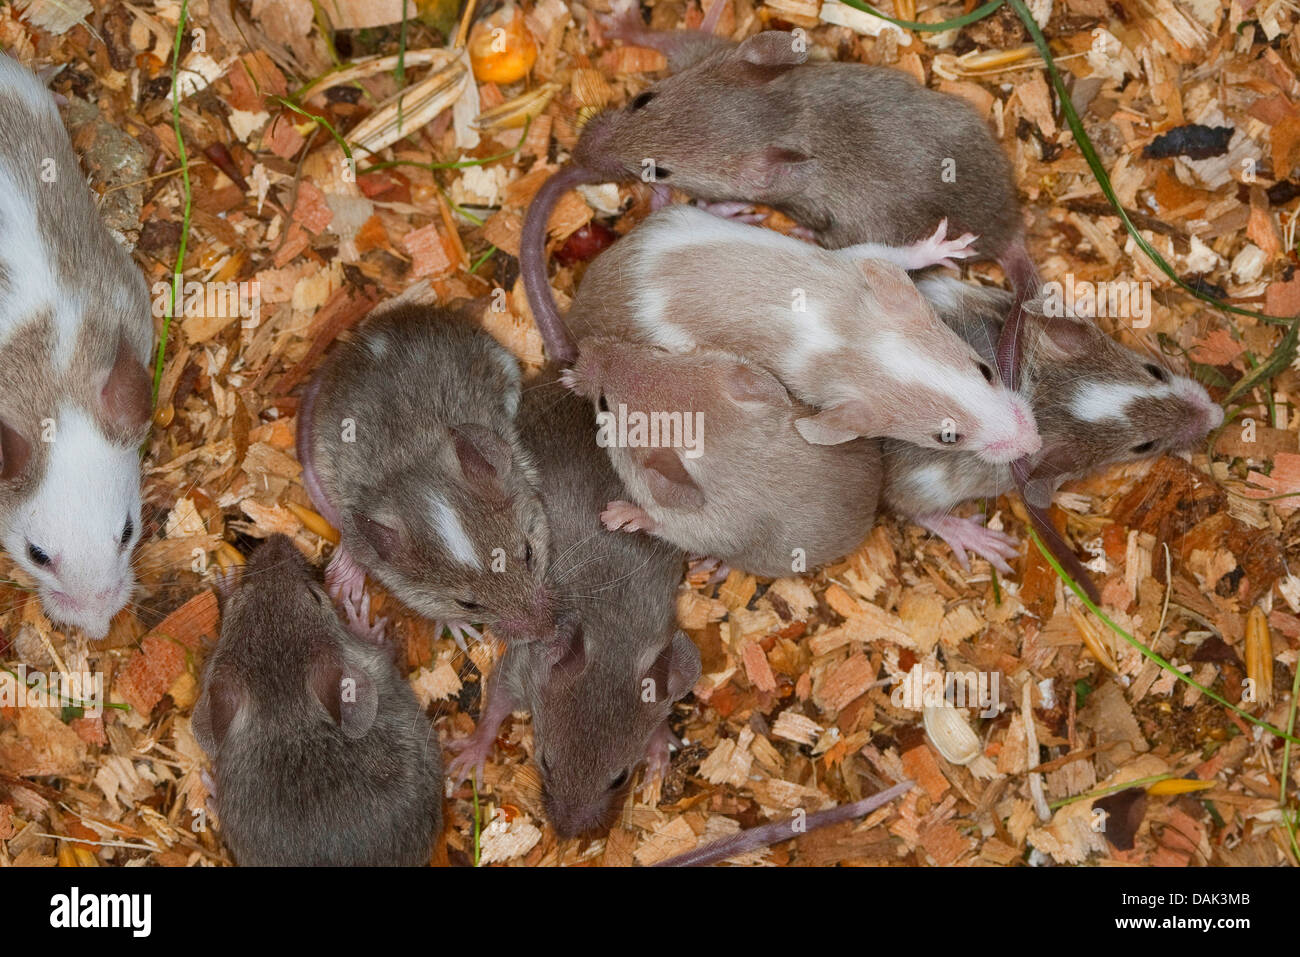 Fancy mouse (Mus musculus f. domestica), young mice in the nest - Stock Image